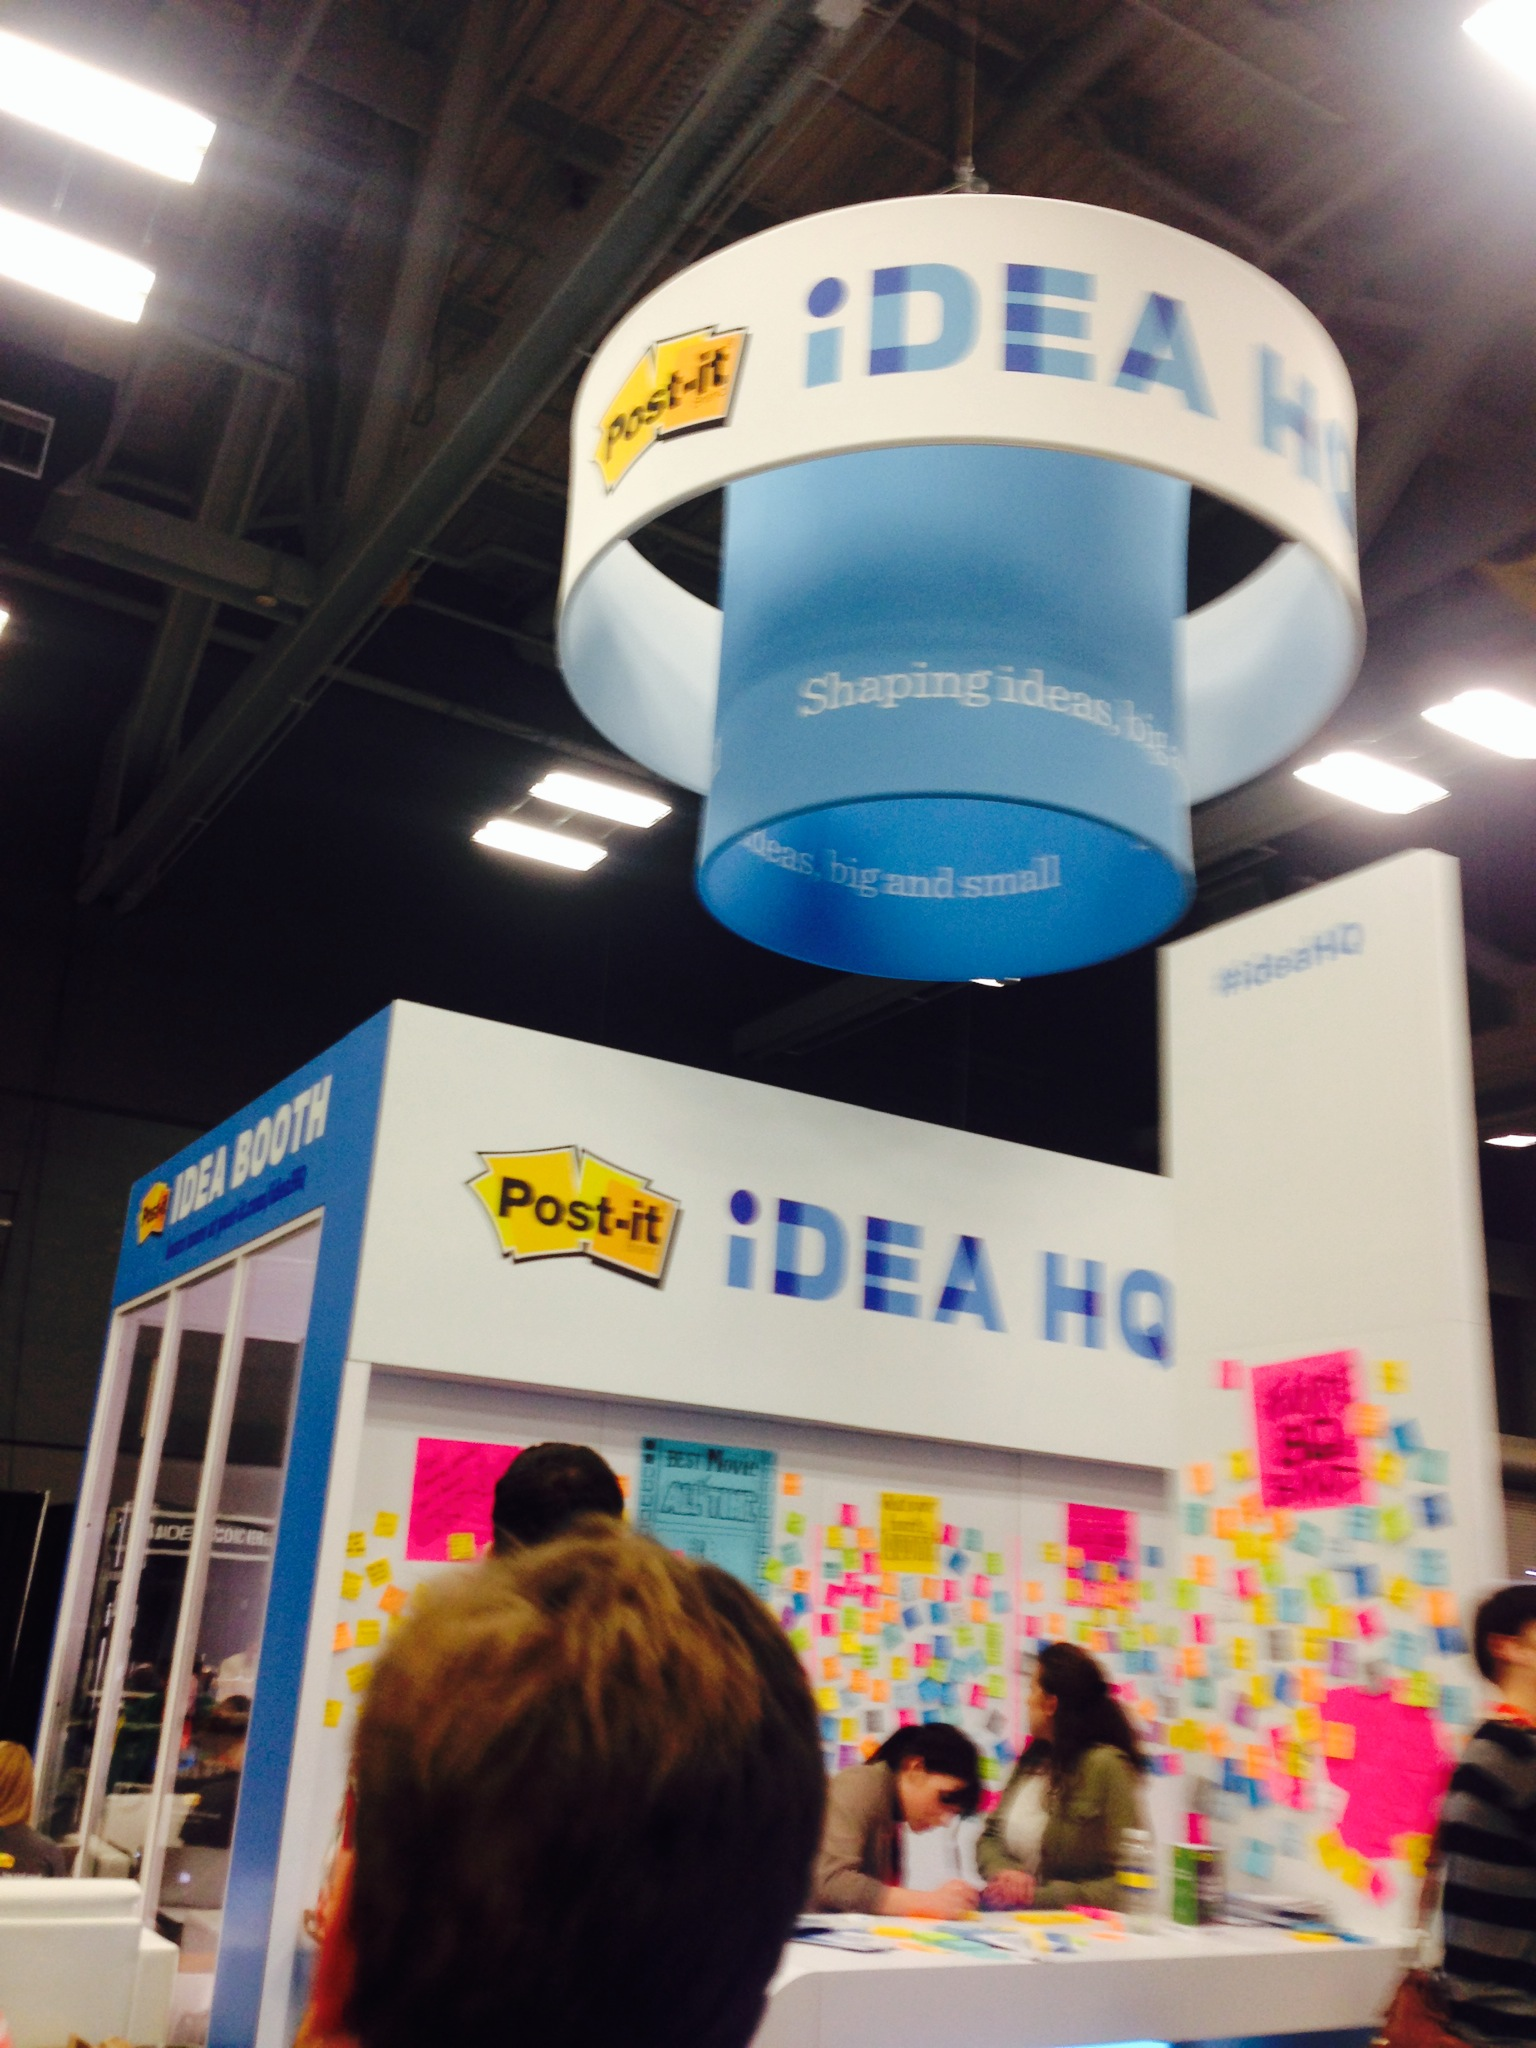 One of the largest exhibitions by Post- It. They even had an Idea HQ